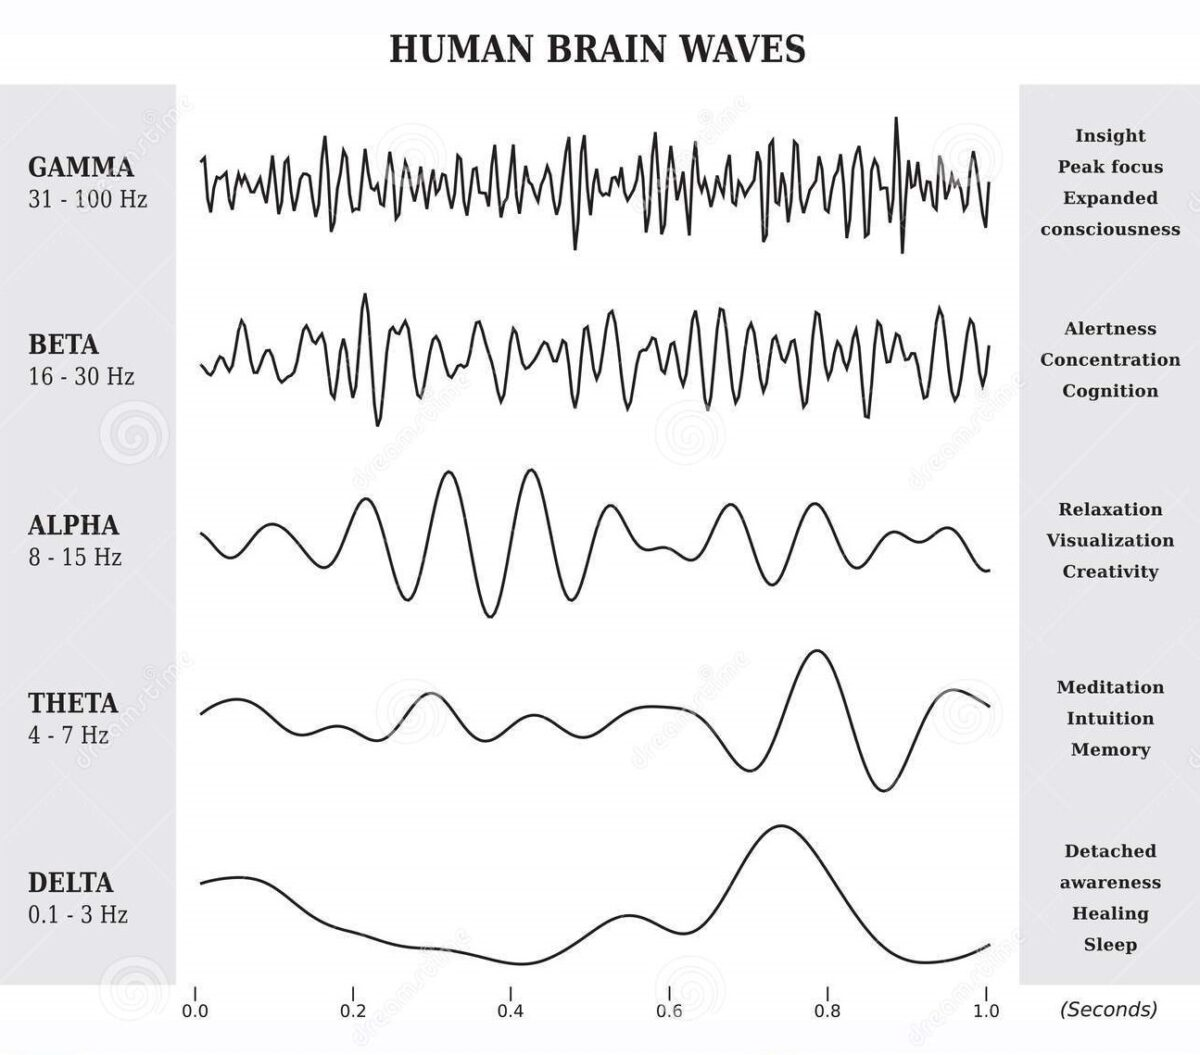 brain waves indicate meditative & intuitive states of consciousness